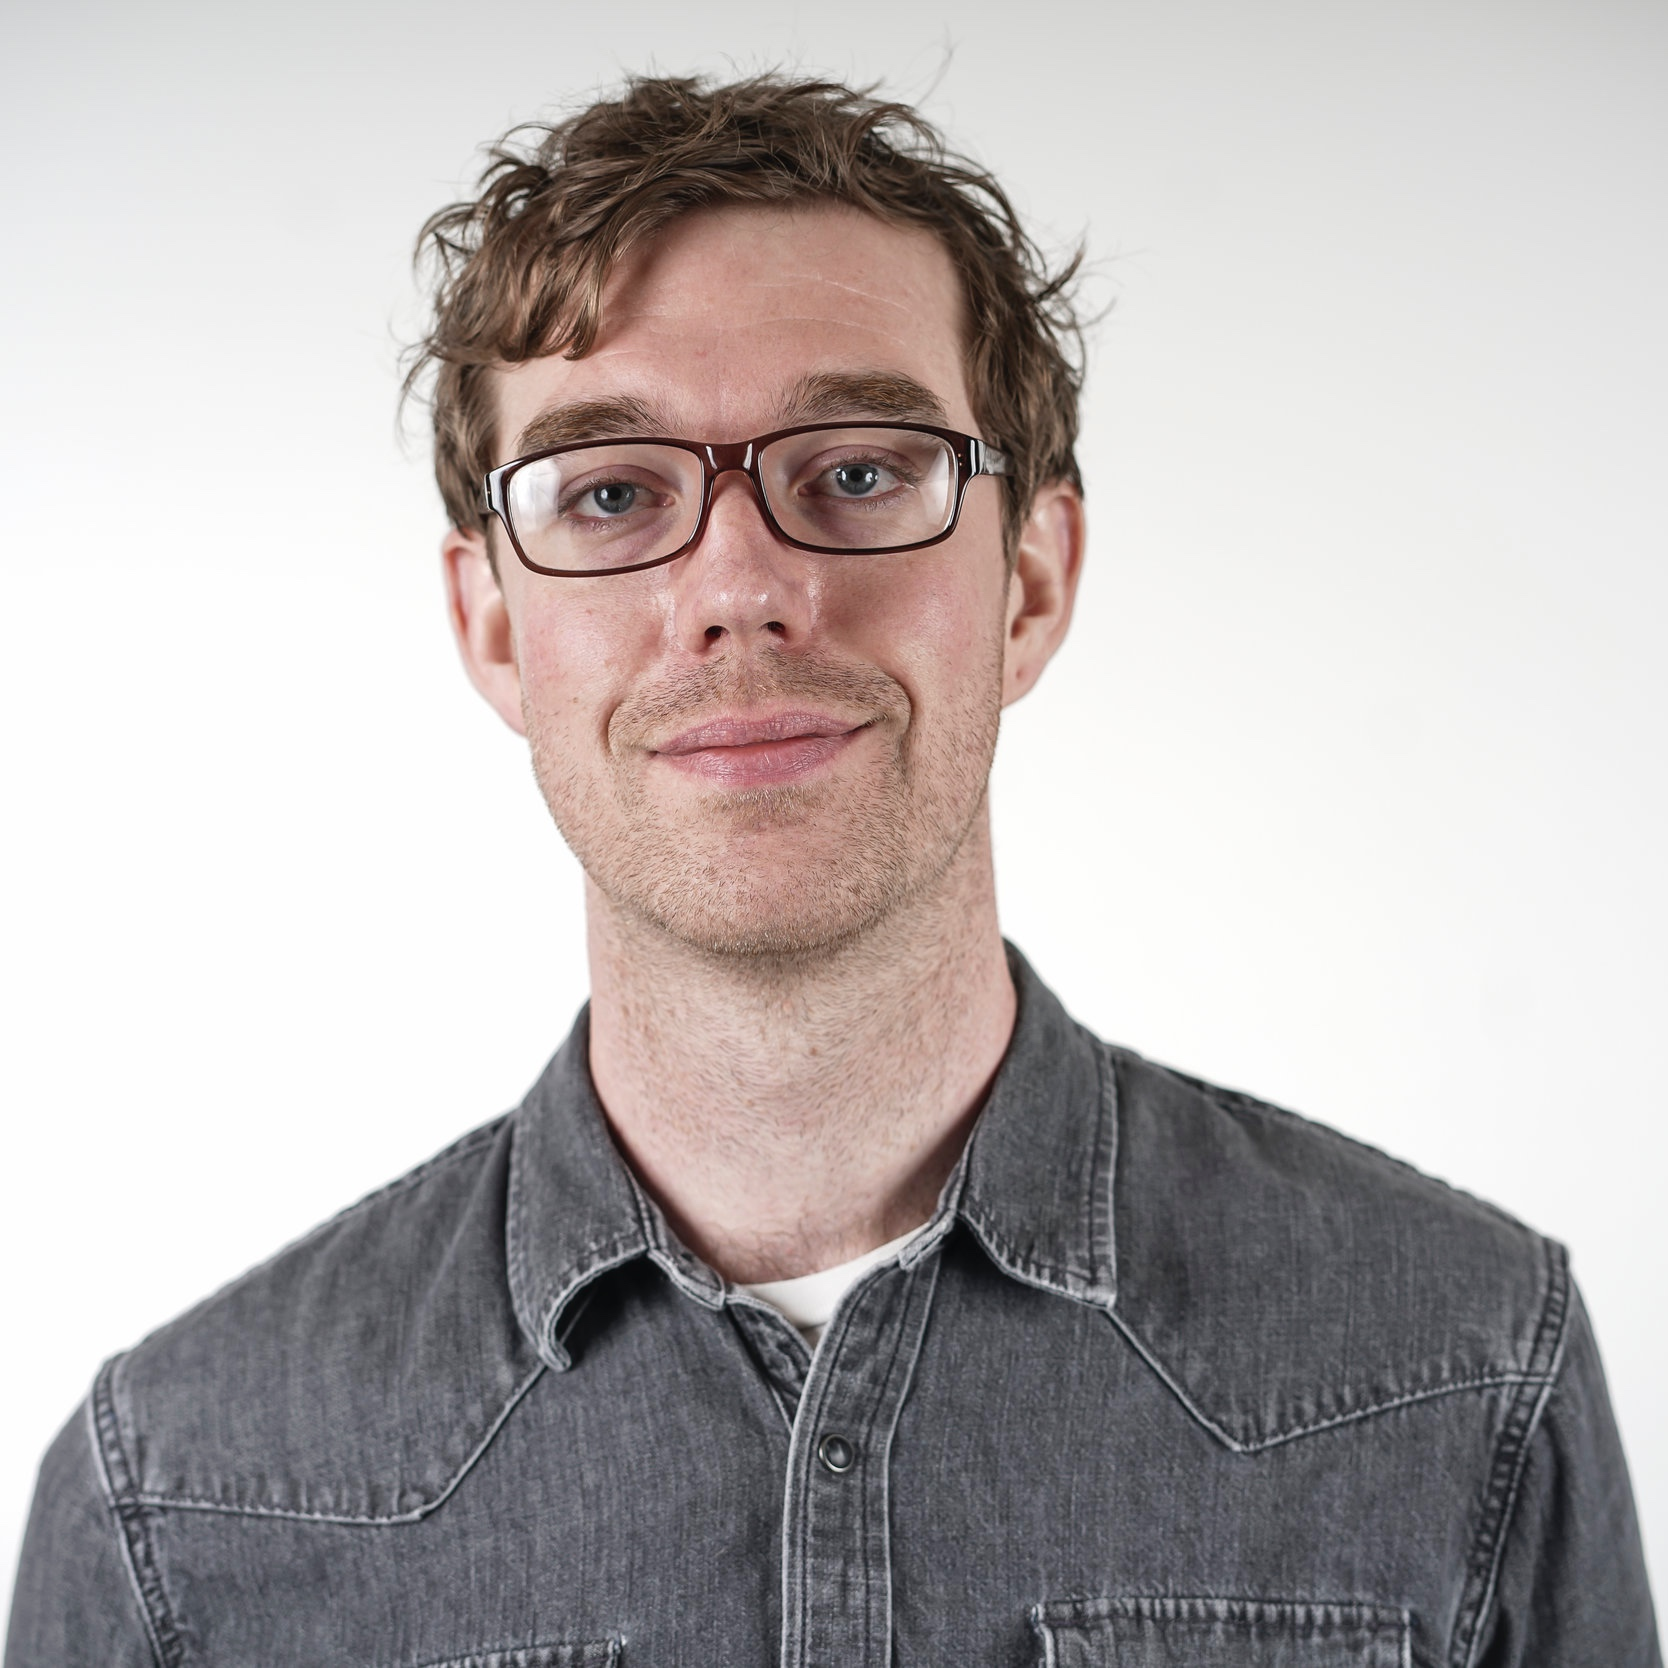 Nathan Page - Nathan Page was born in Kingston, Ontario, where he began writing and acting at an early age. He moved to Toronto in 2010.Books:The Montague Twins (Knopf Books for Young Readers, 2020)